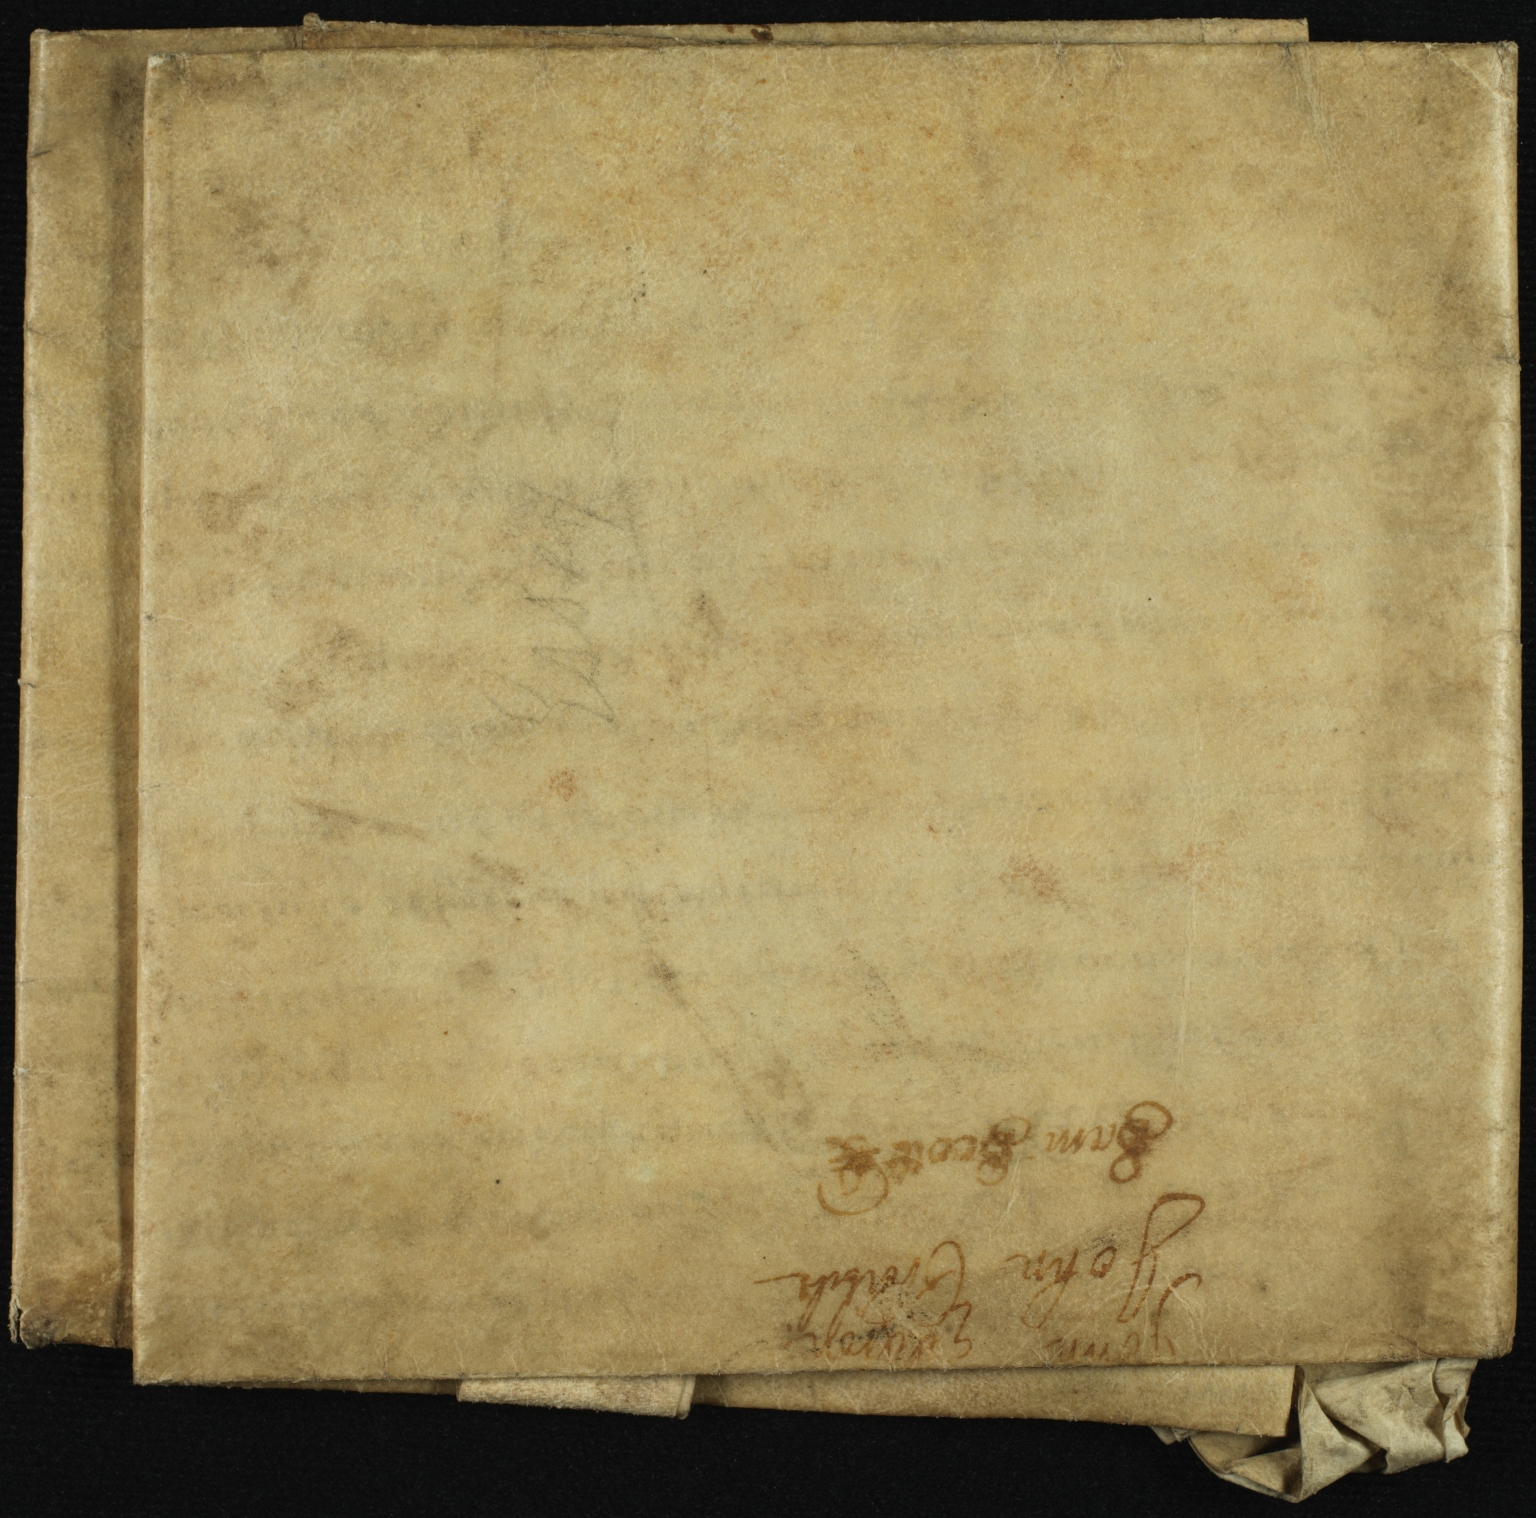 Mortgage, 1686, of Land in Essex to Dorothy Collard of Barnstone, folded, back